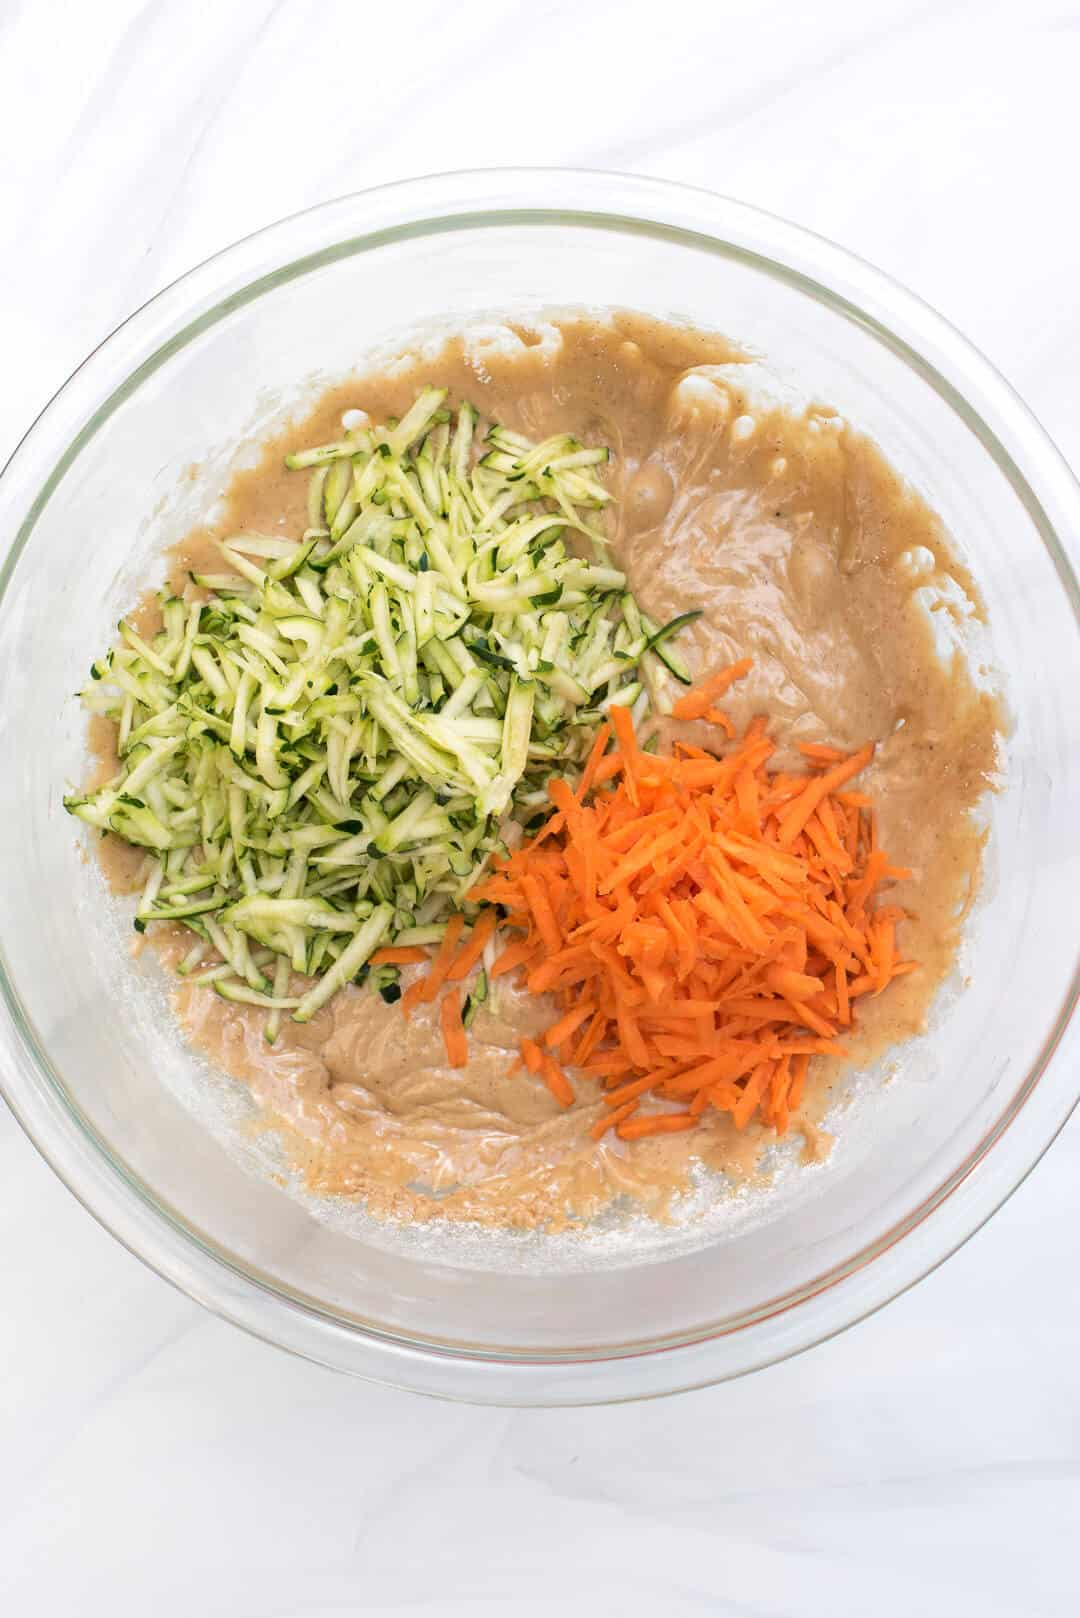 The batter in a clear glass mixing bowl with shredded carrot and zucchini on top.